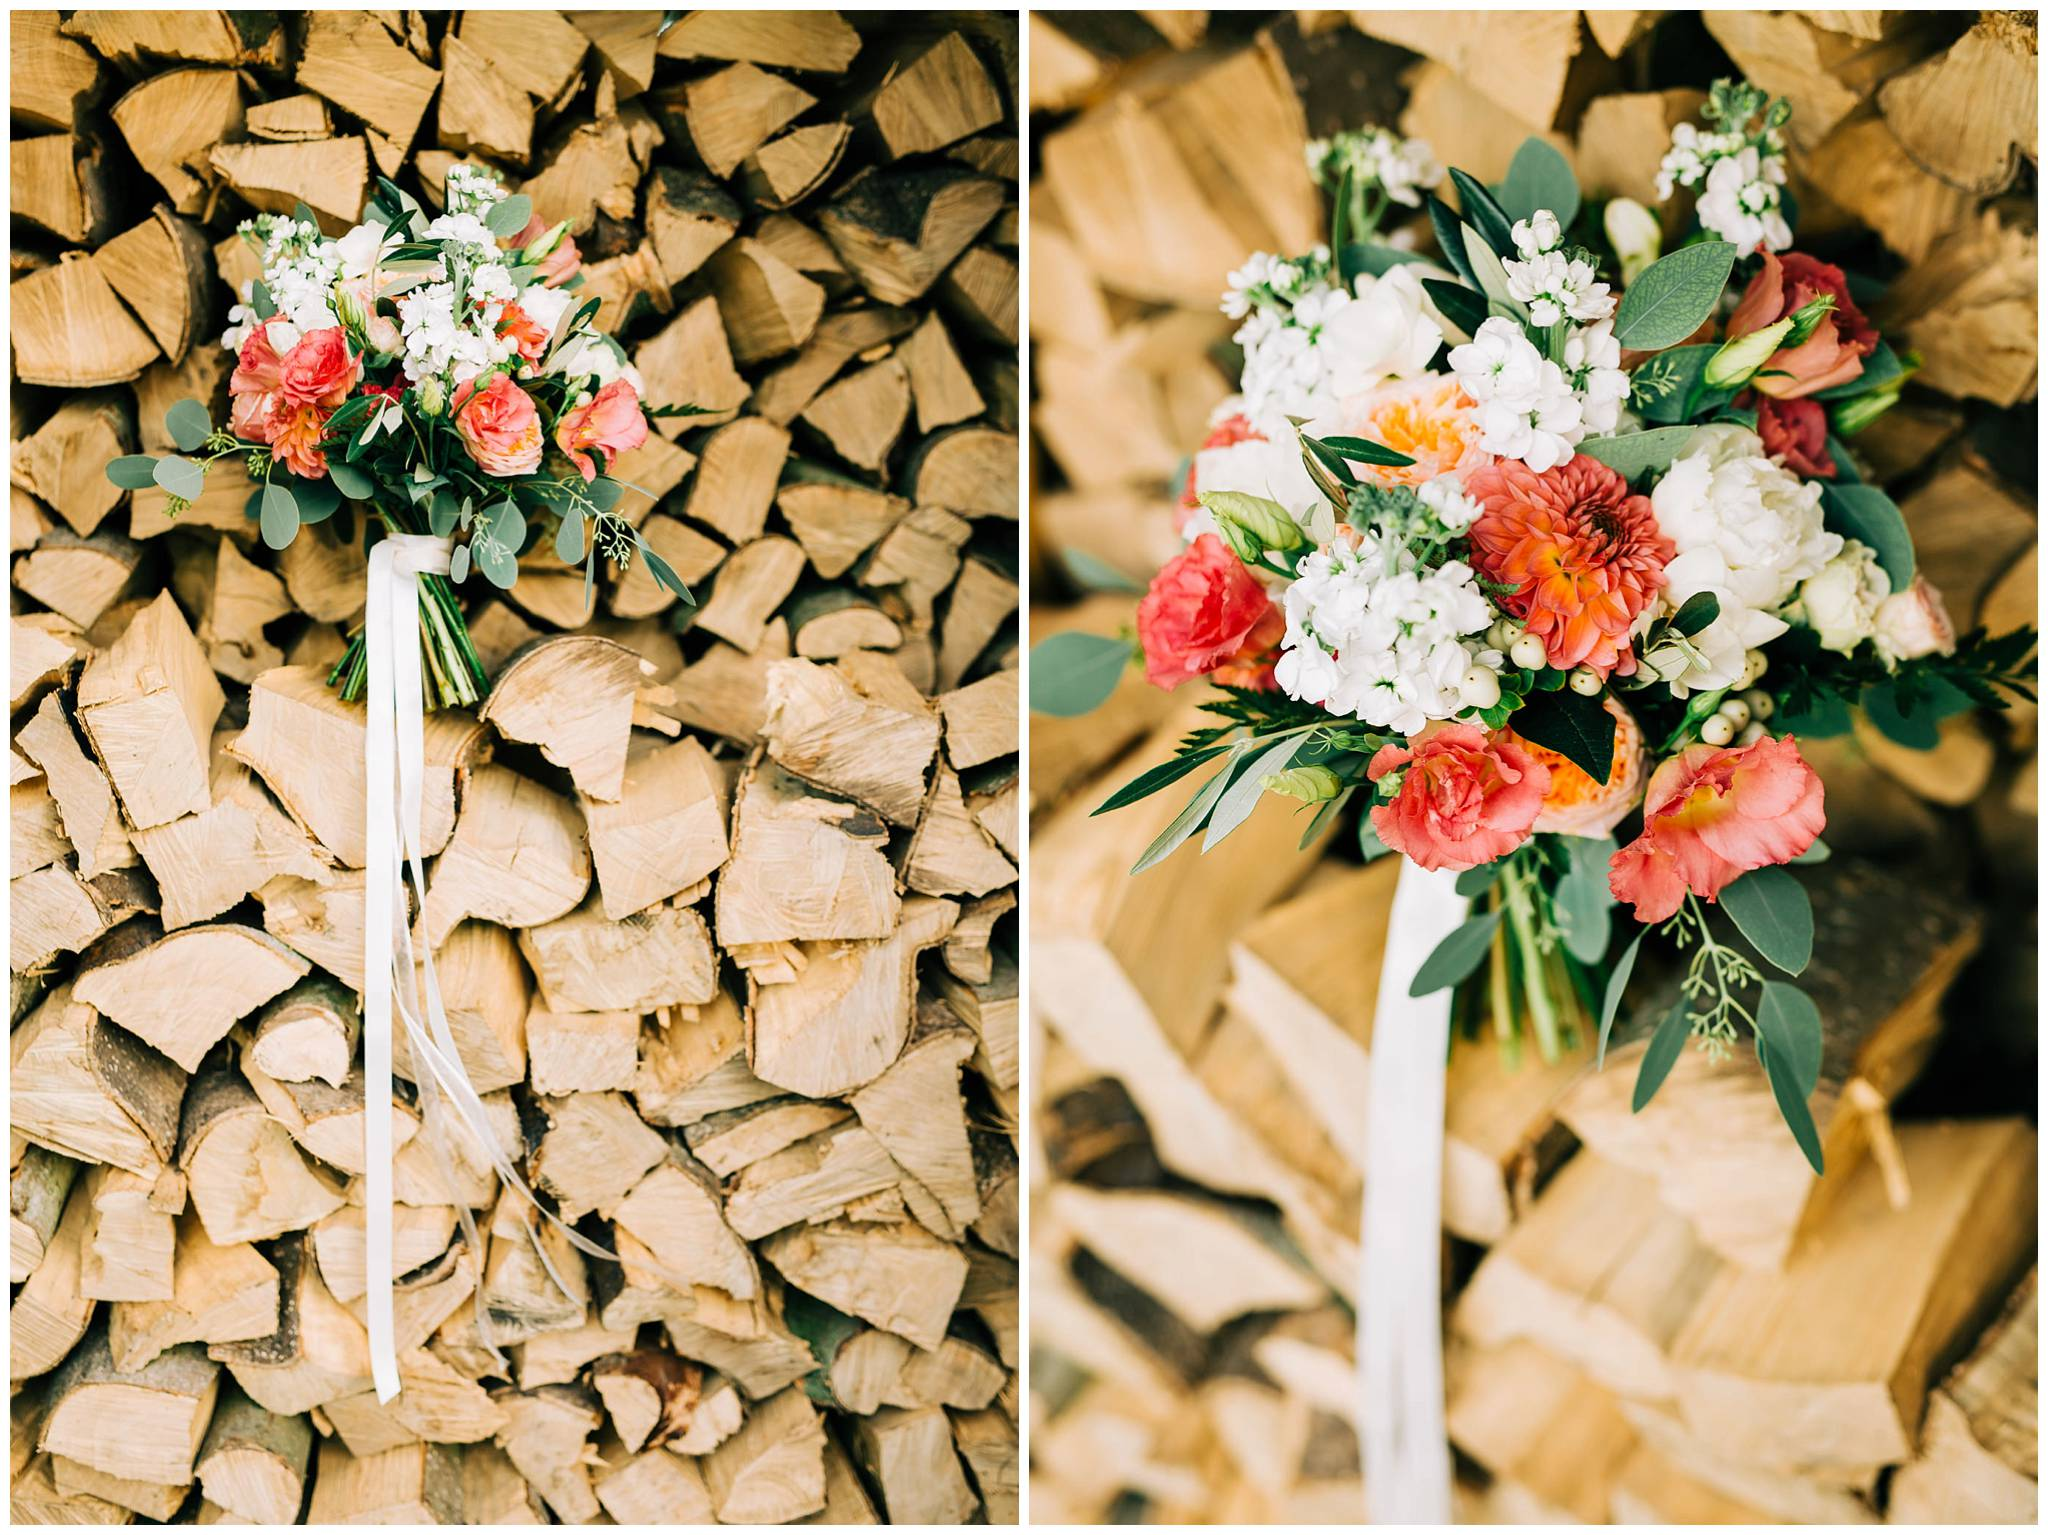 Chic Summer Wedding at Hazel Gap Barn - Nottinghamshire Photographer1.jpg